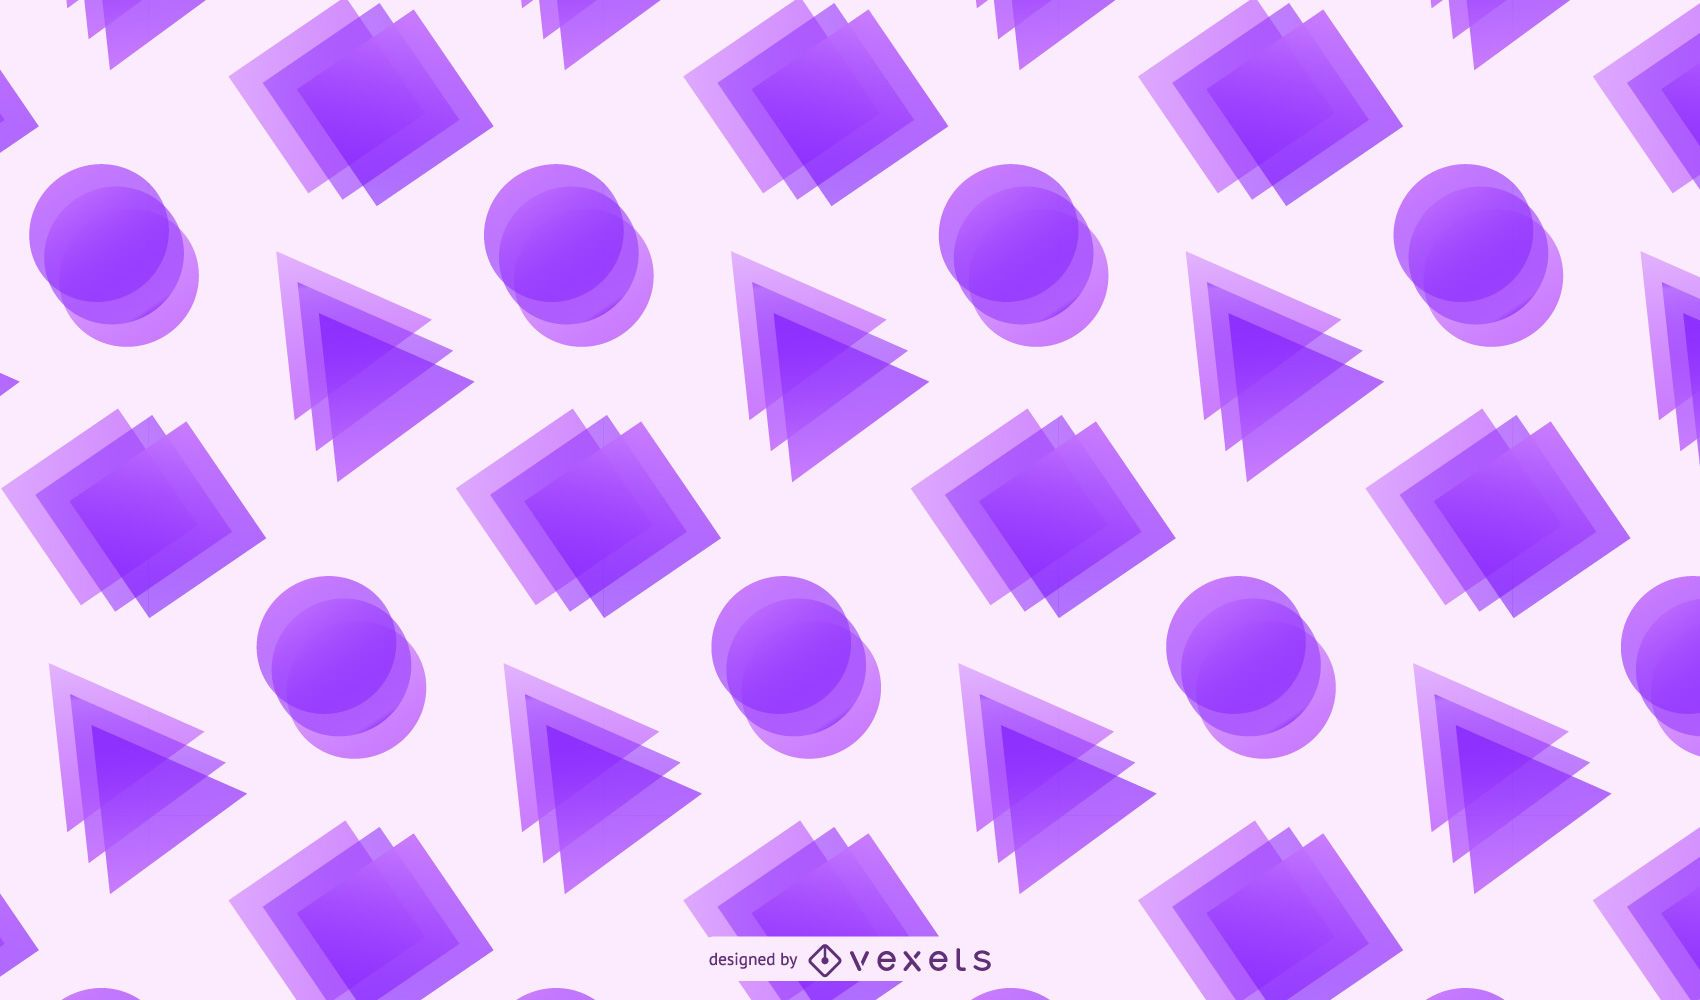 Crystallized Rectangles Triangles Circles Background